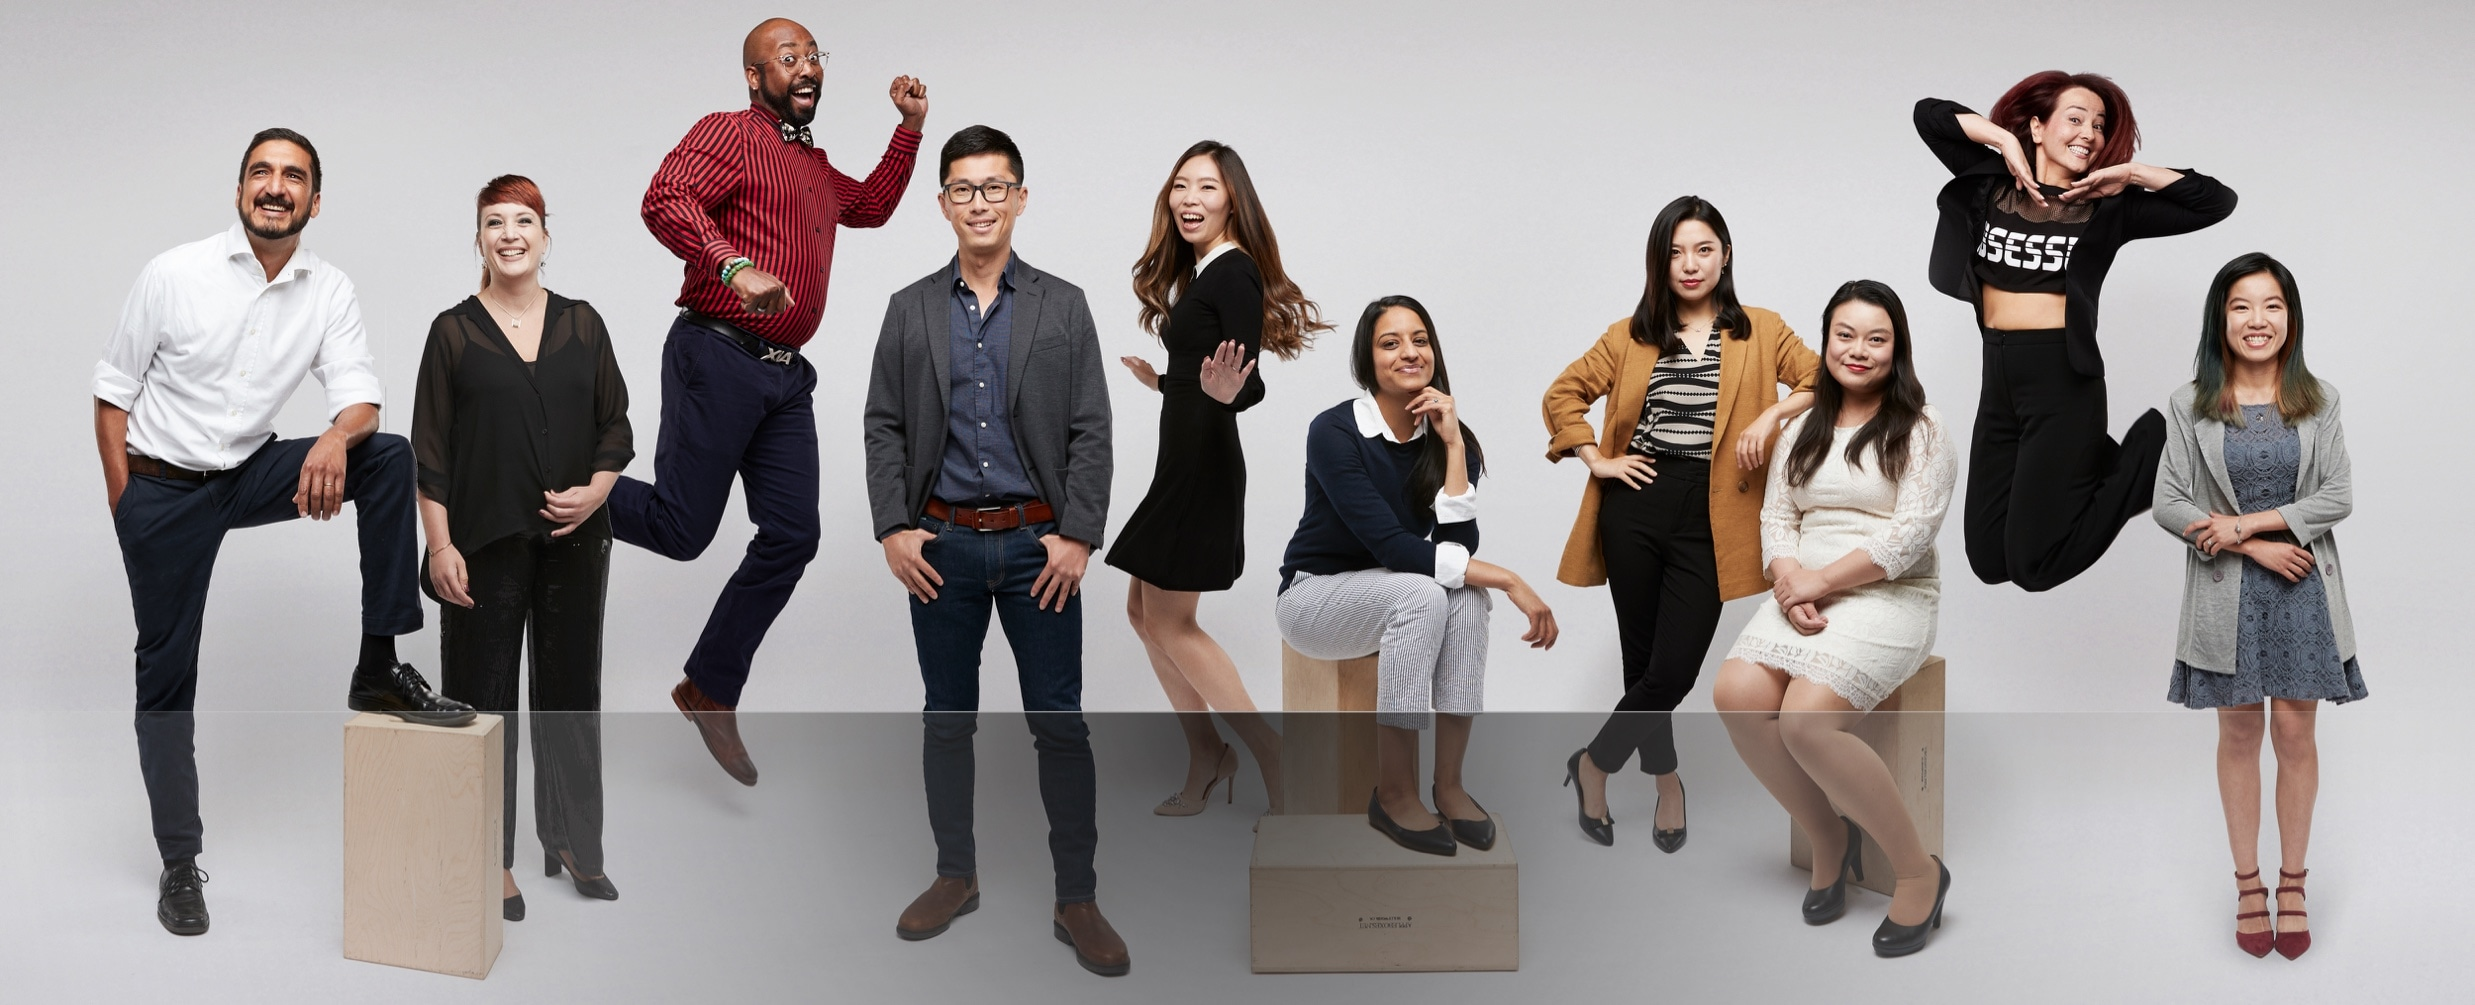 Exuberant Zenni employees striking poses against a white background.